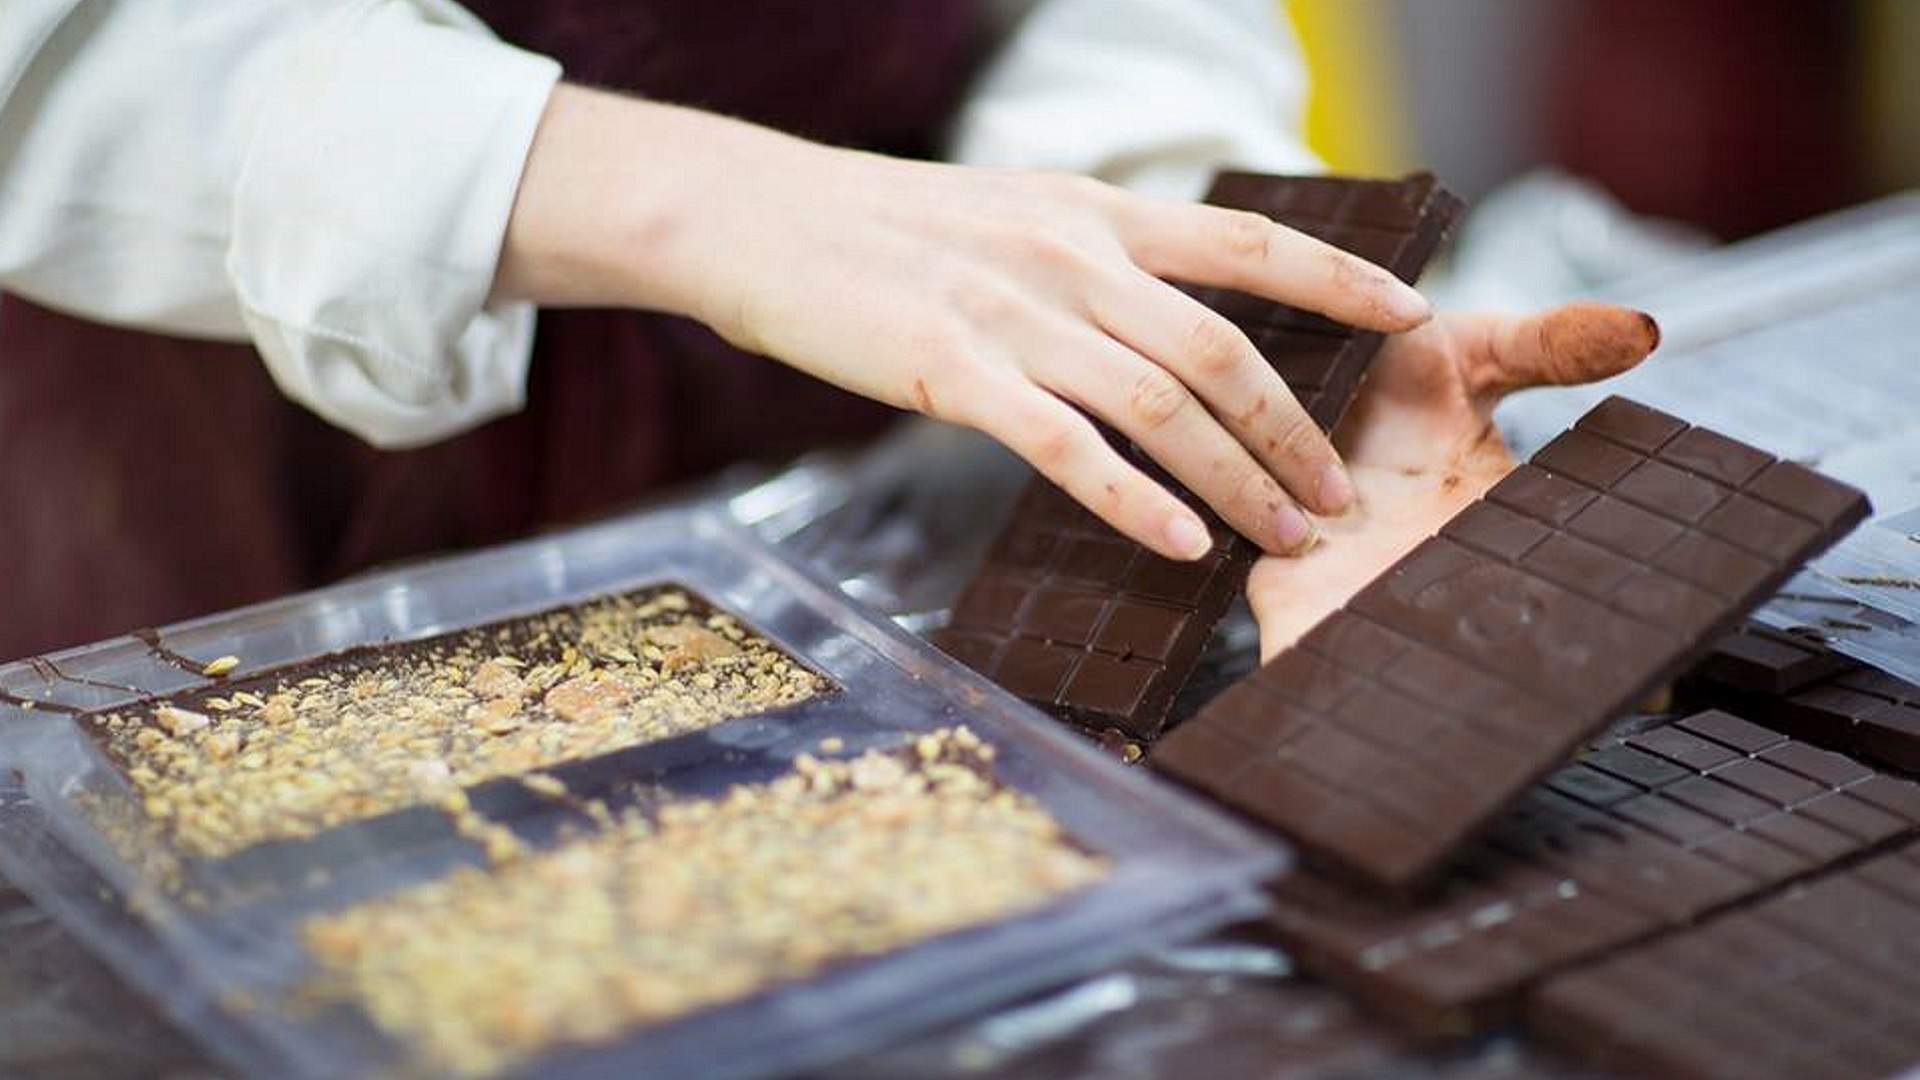 You Can Eat Chocolate for a Good Cause Thanks to the Nikau Foundation